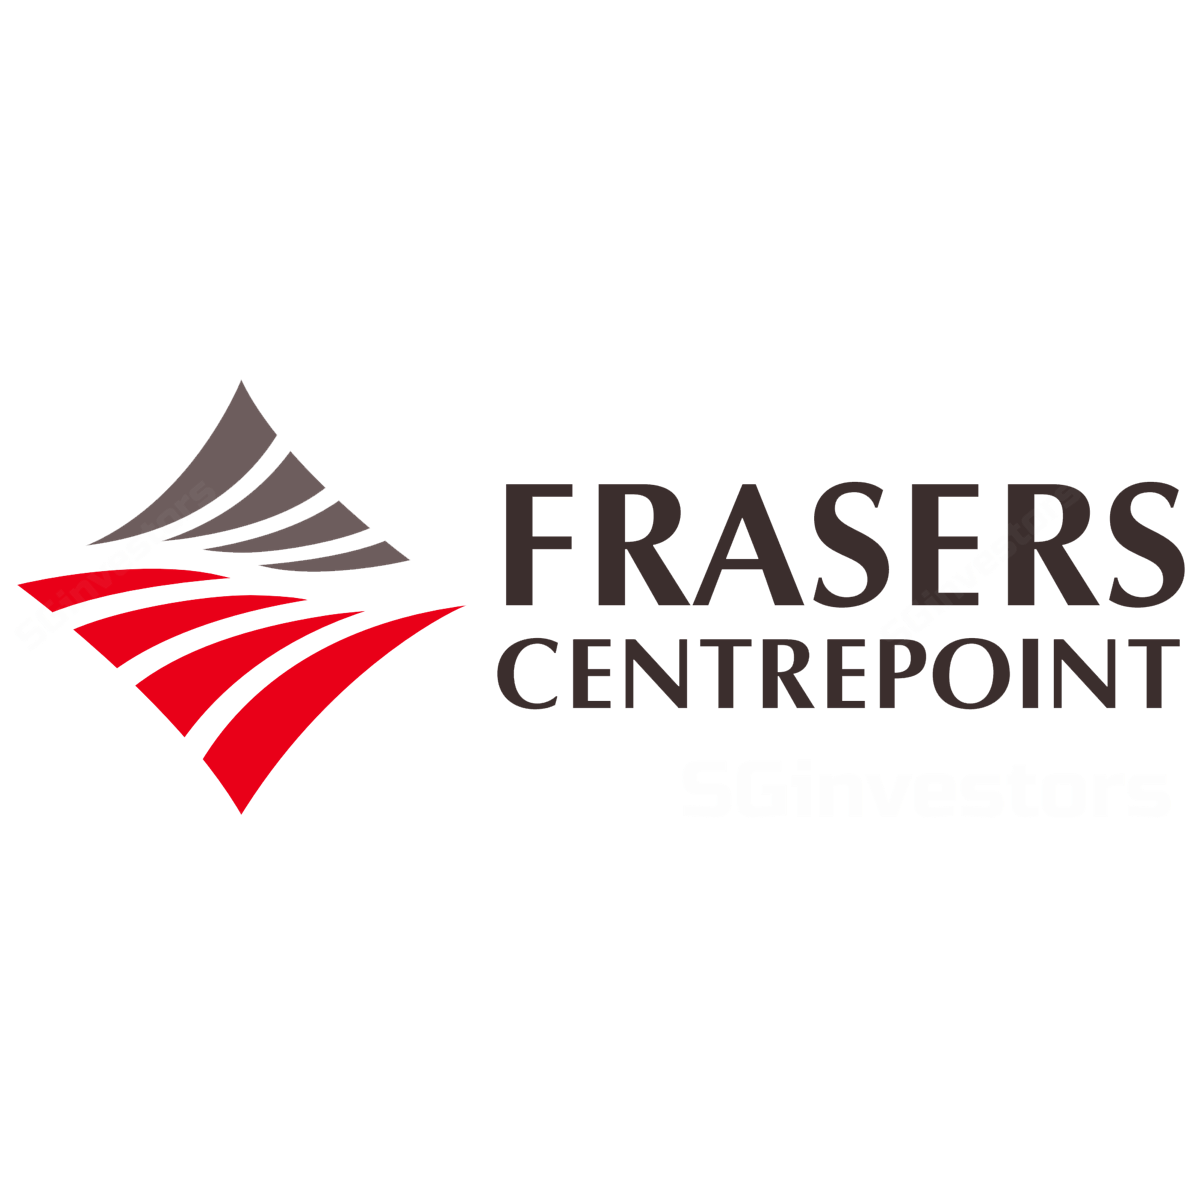 Frasers Centrepoint Ltd - DBS Vickers 2017-11-14: Growth And Yield